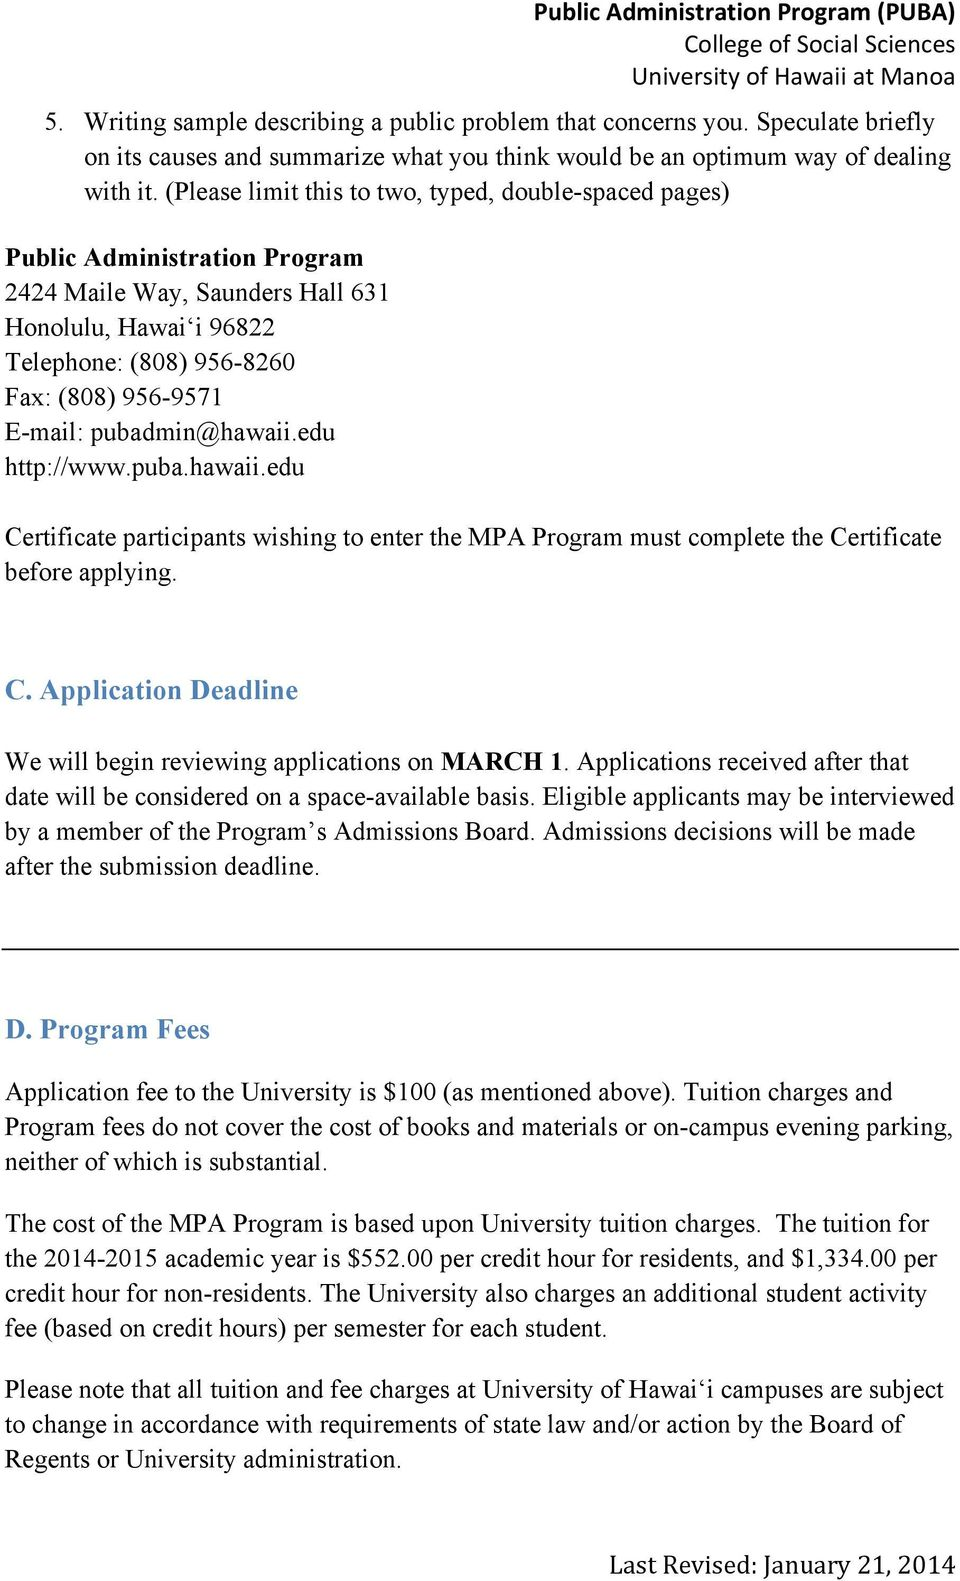 pubadmin@hawaii.edu http://www.puba.hawaii.edu Certificate participants wishing to enter the MPA Program must complete the Certificate before applying. C. Application Deadline We will begin reviewing applications on MARCH 1.